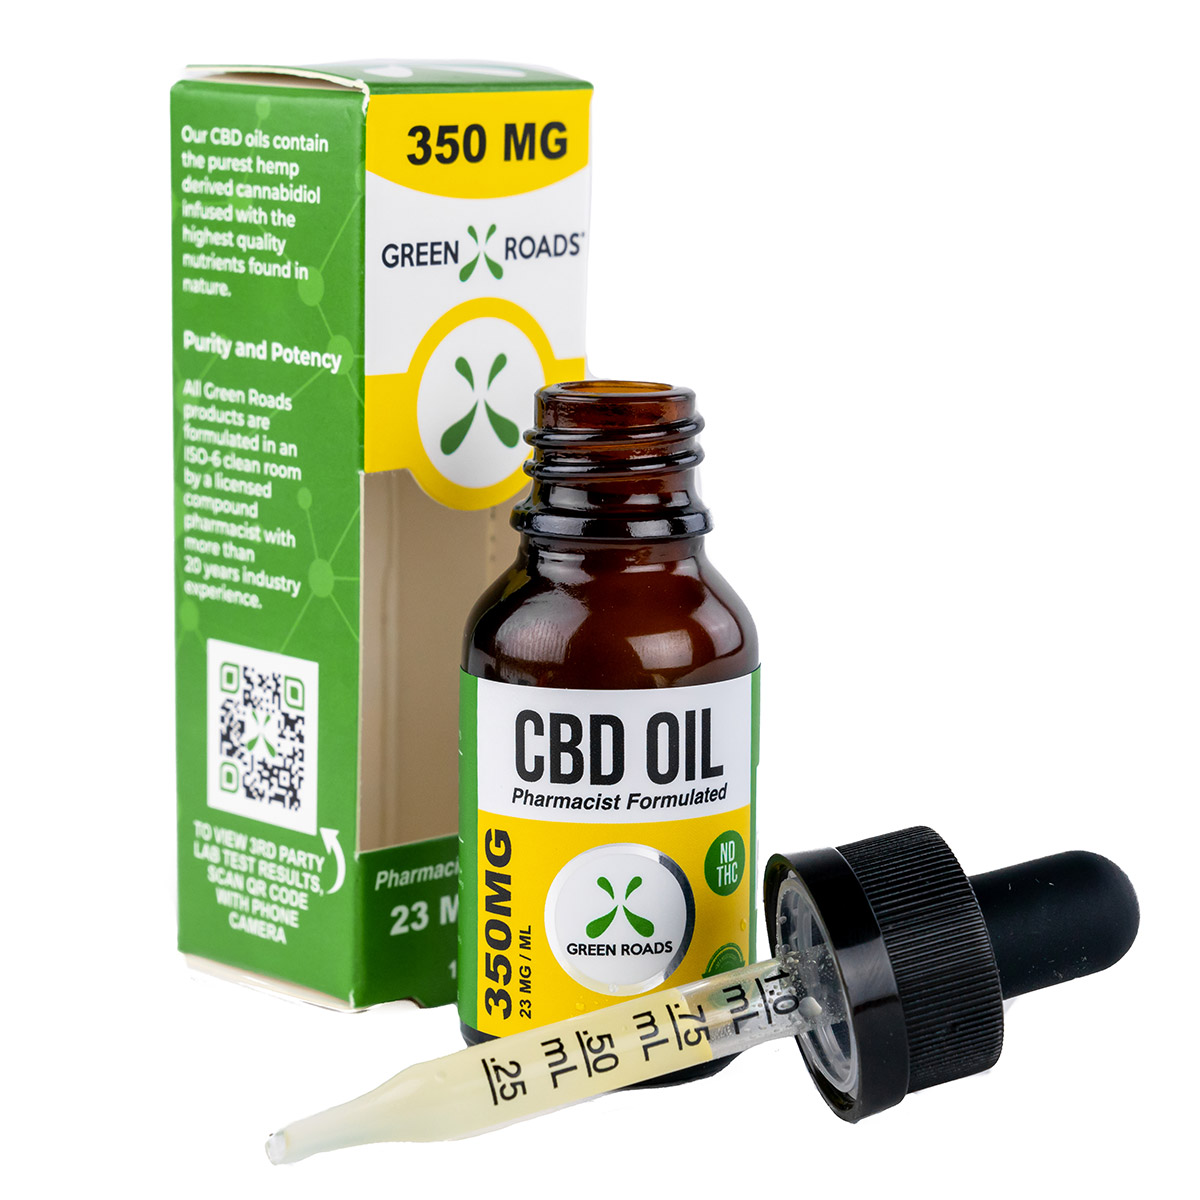 CBD Oil 350 MG $53